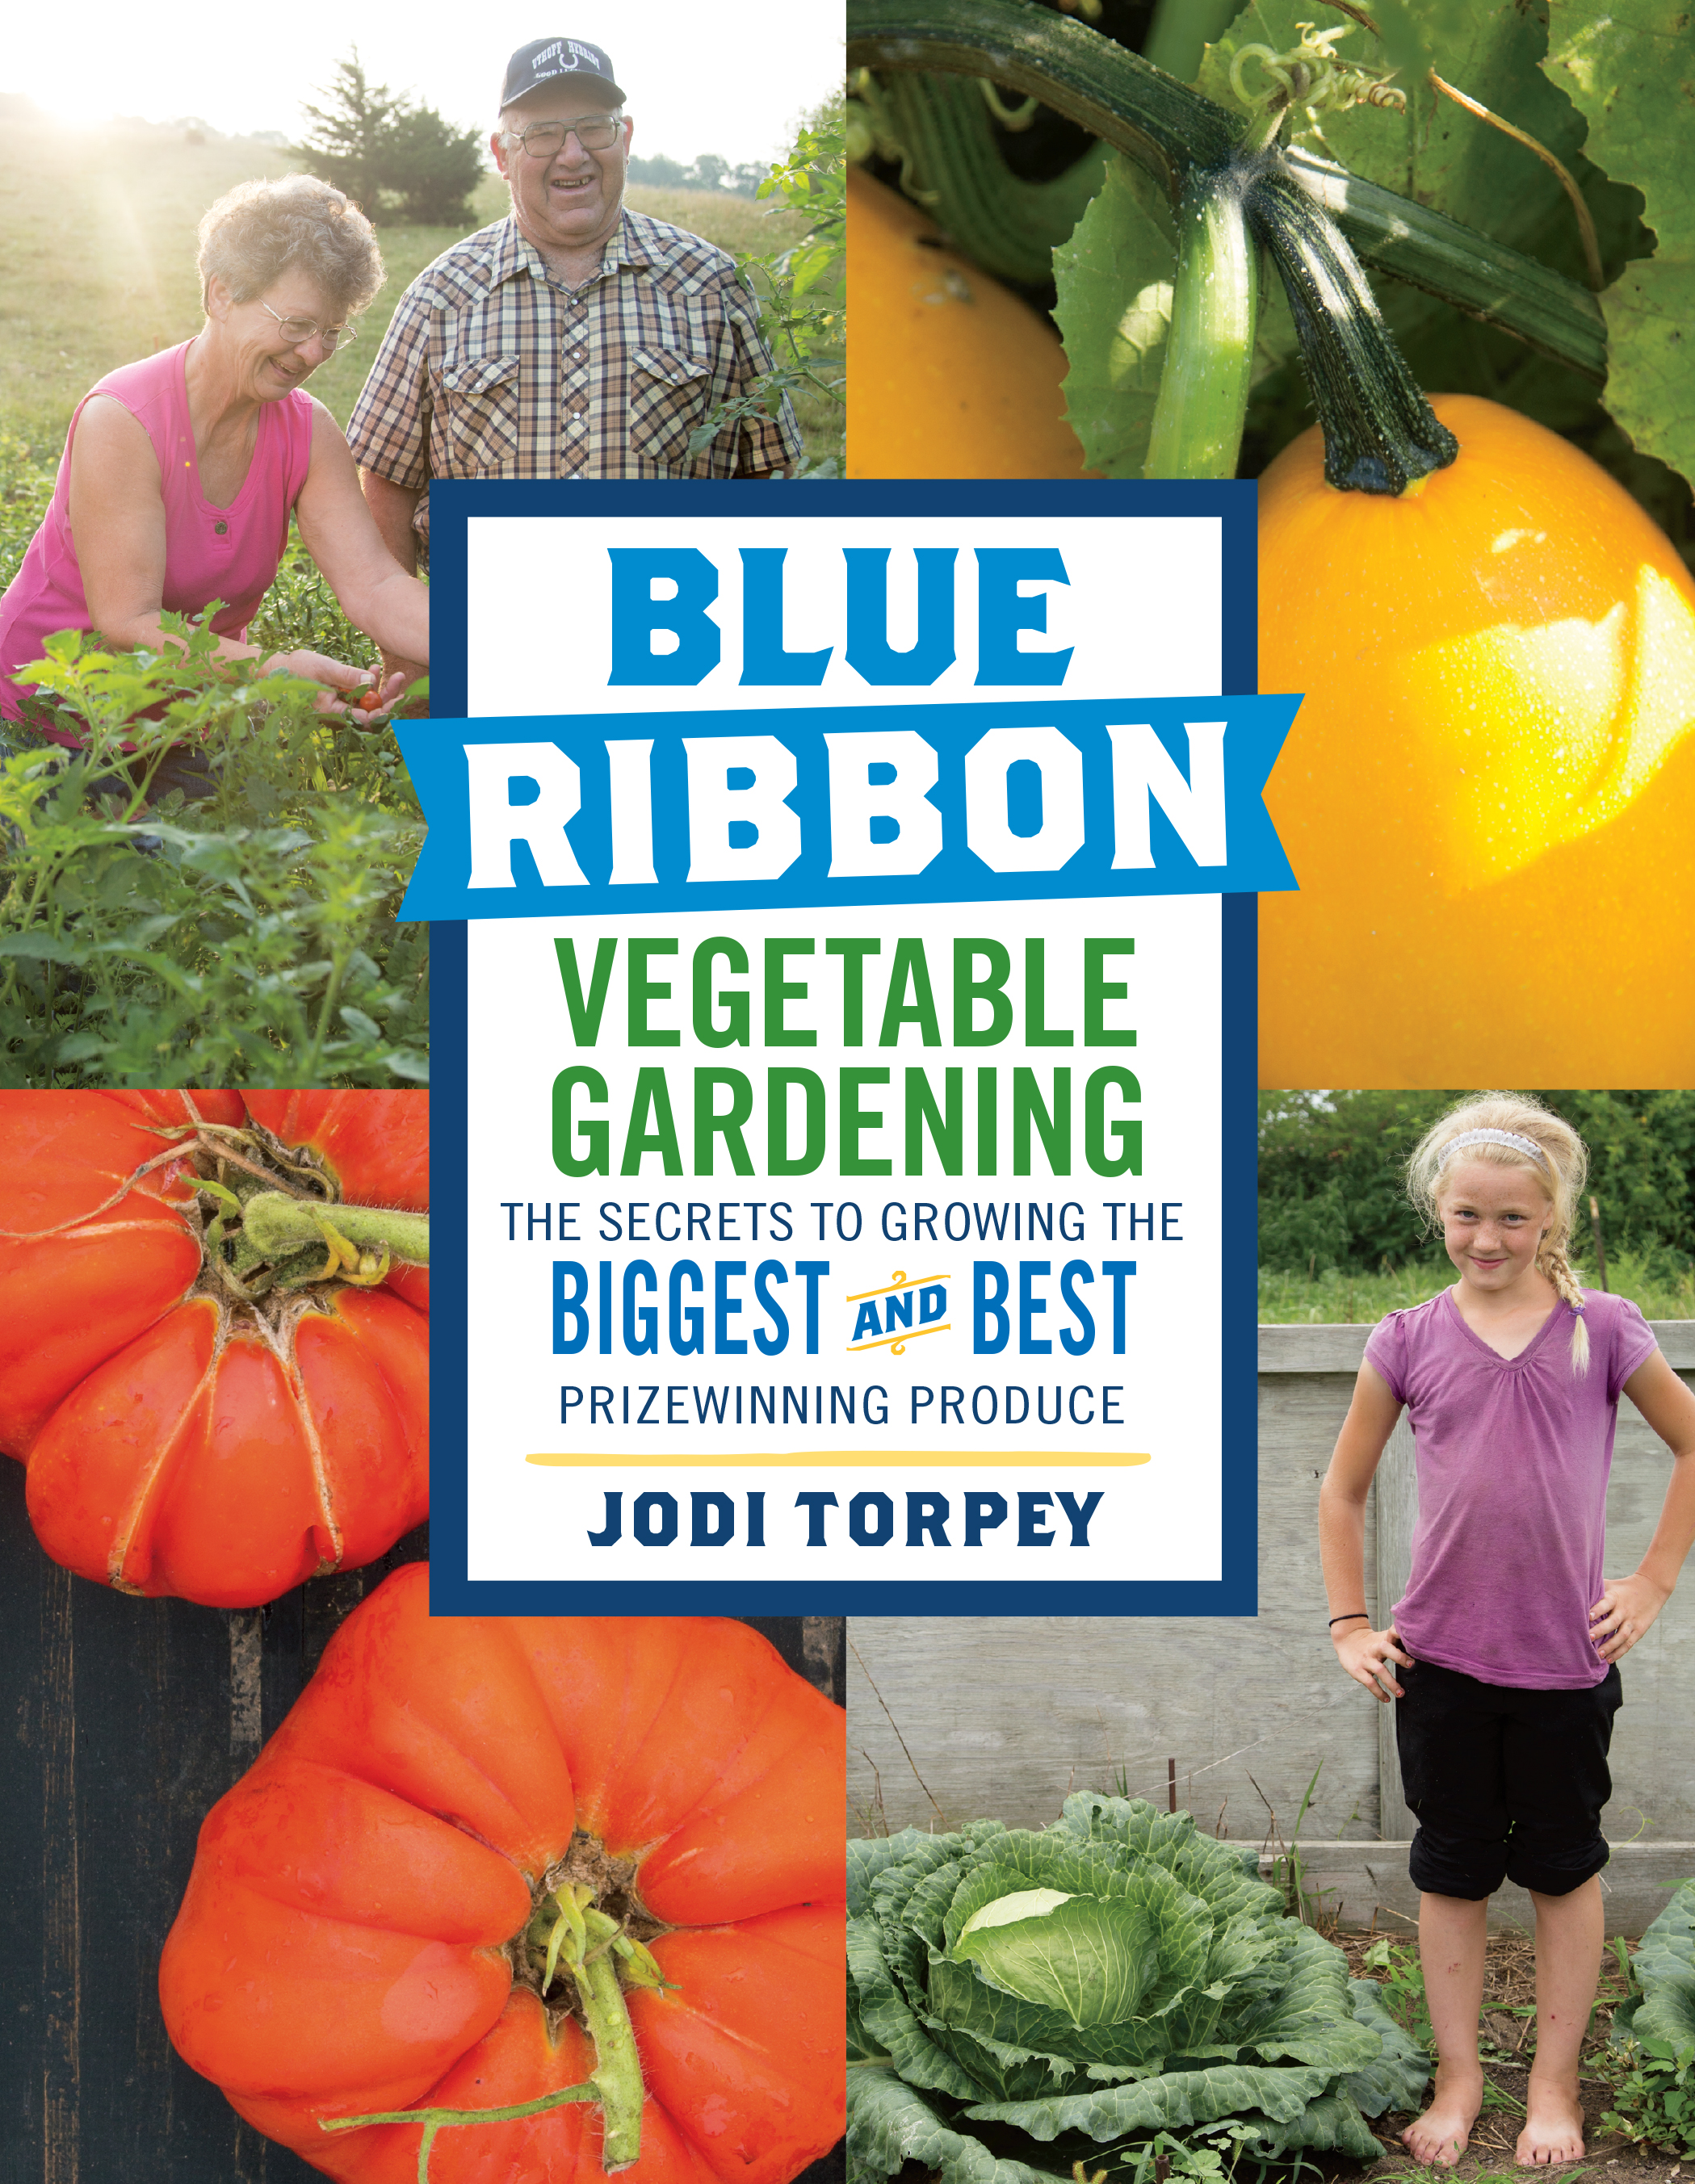 Blue Ribbon Vegetable Gardening The Secrets to Growing the Biggest and Best Prizewinning Produce - Jodi Torpey